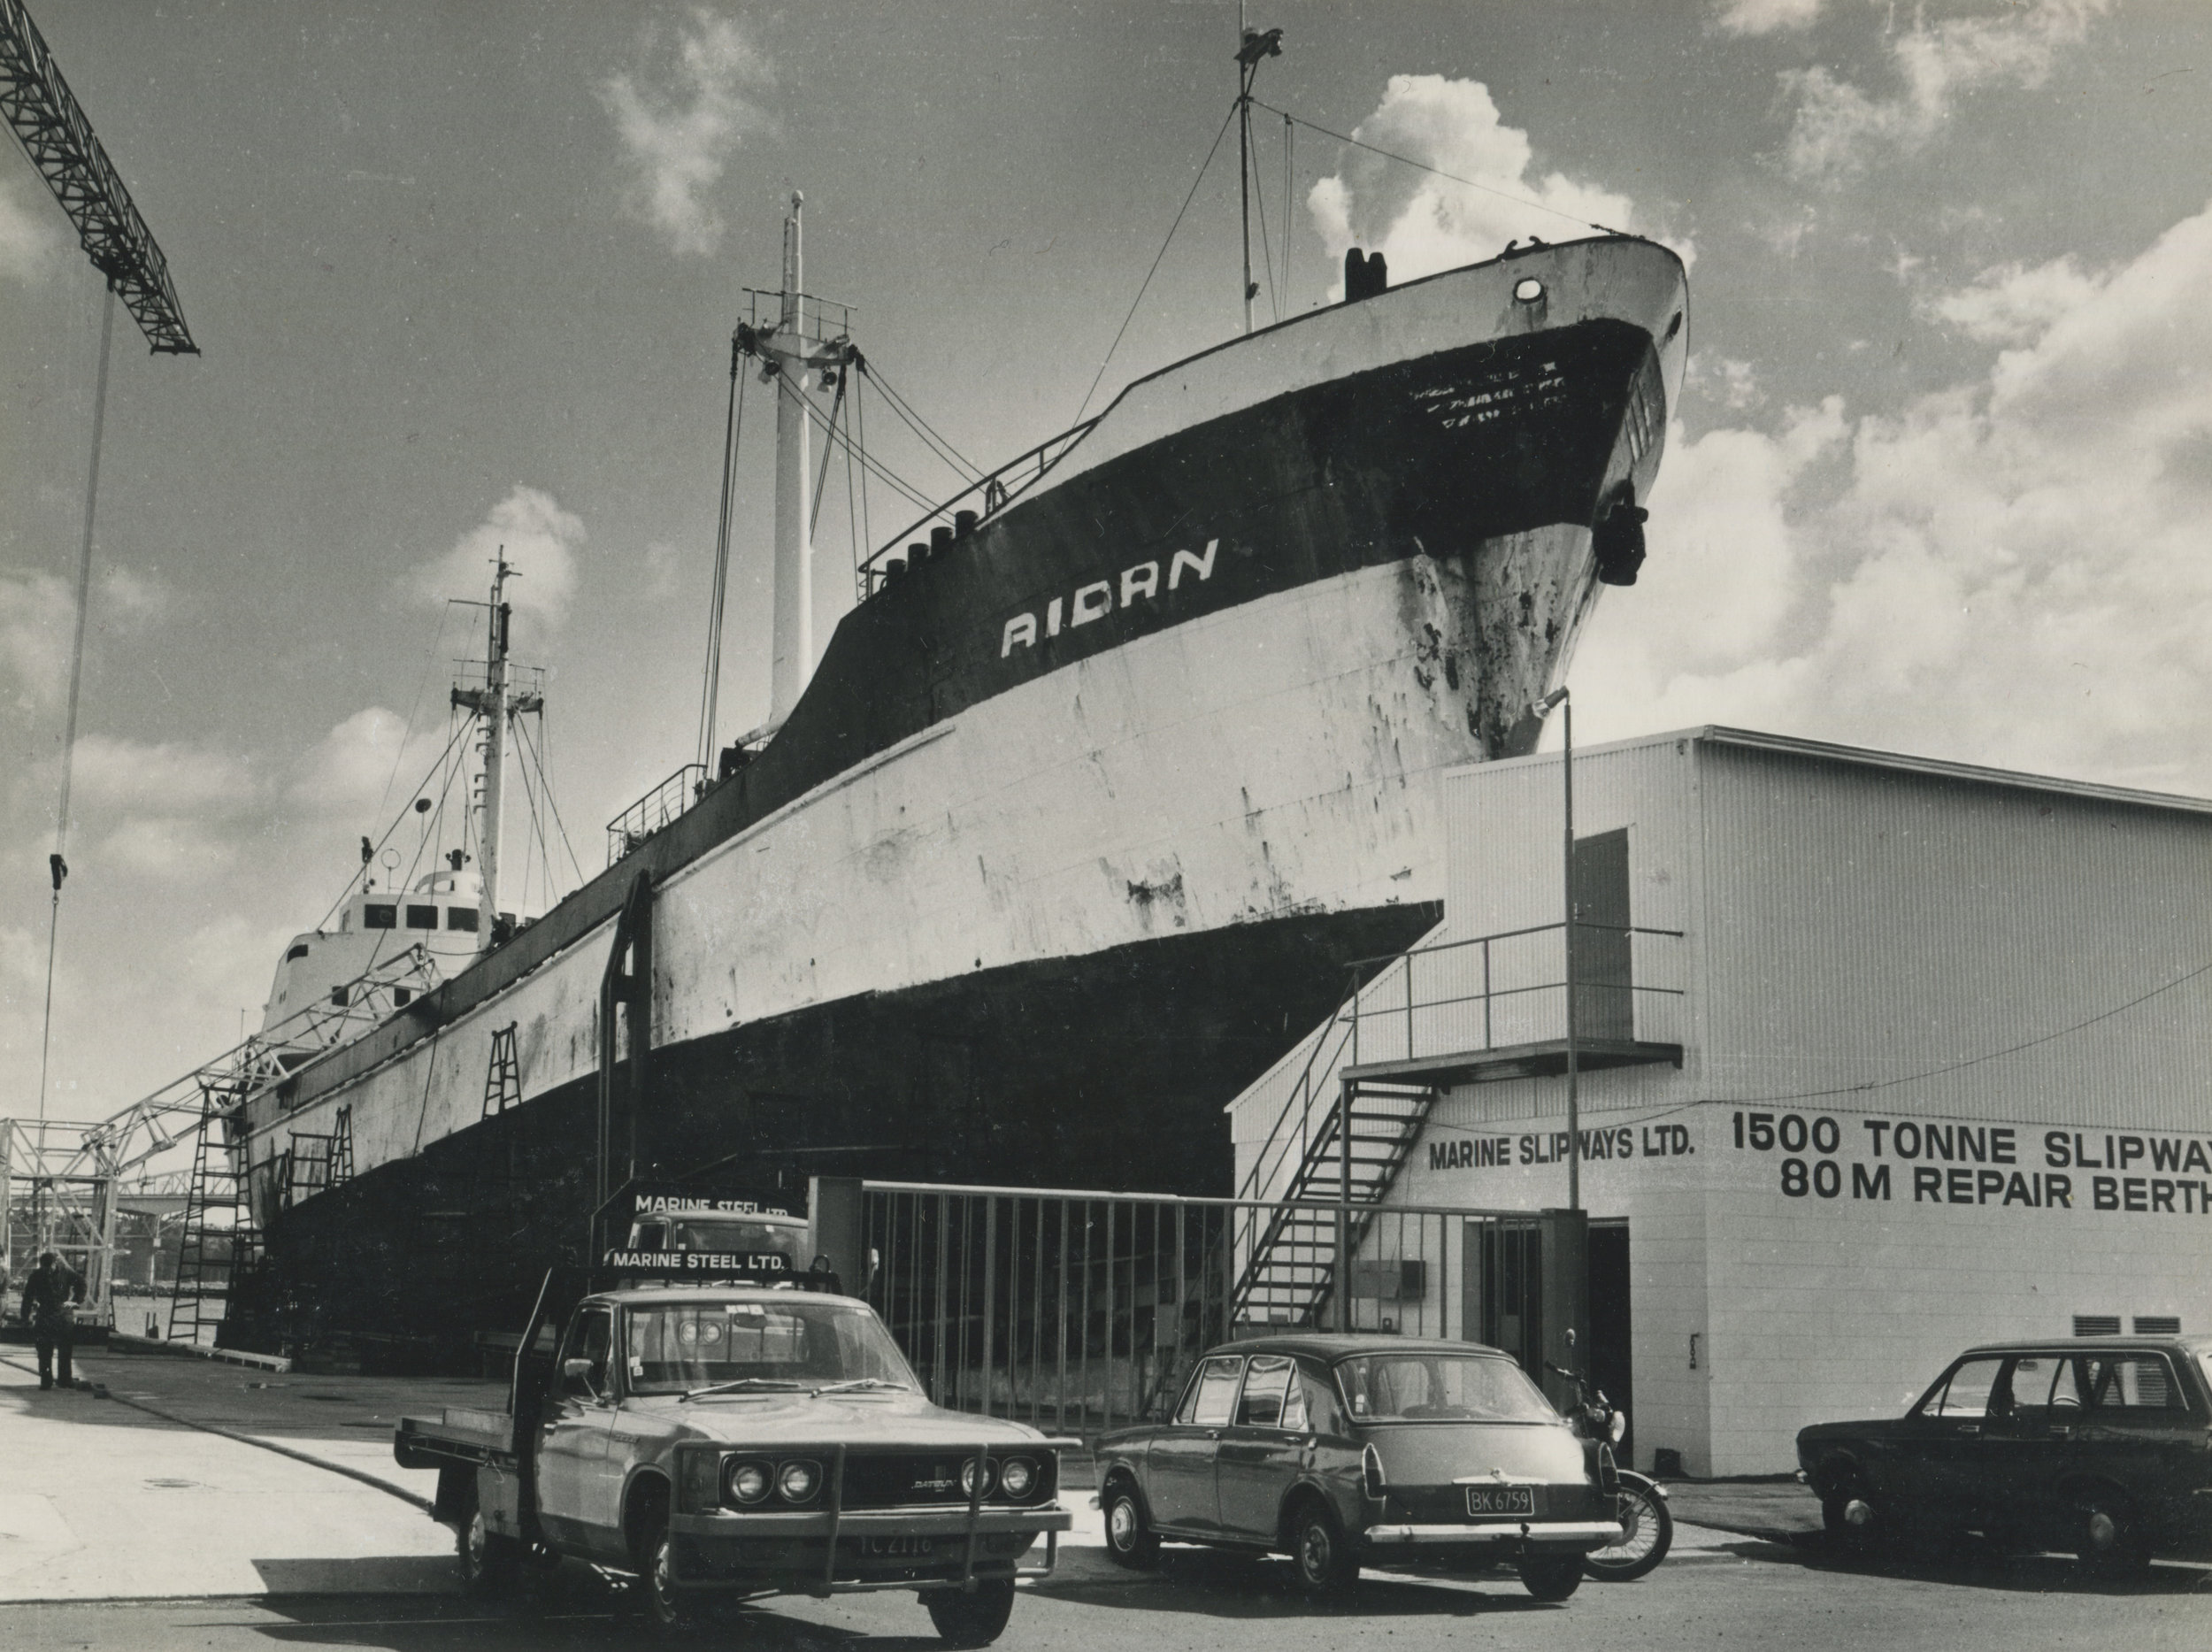 A Warner Pacific ship being worked on by Marine Slipways Ltd in the 1980s. Image courtesy of Titan Marine Engineering.